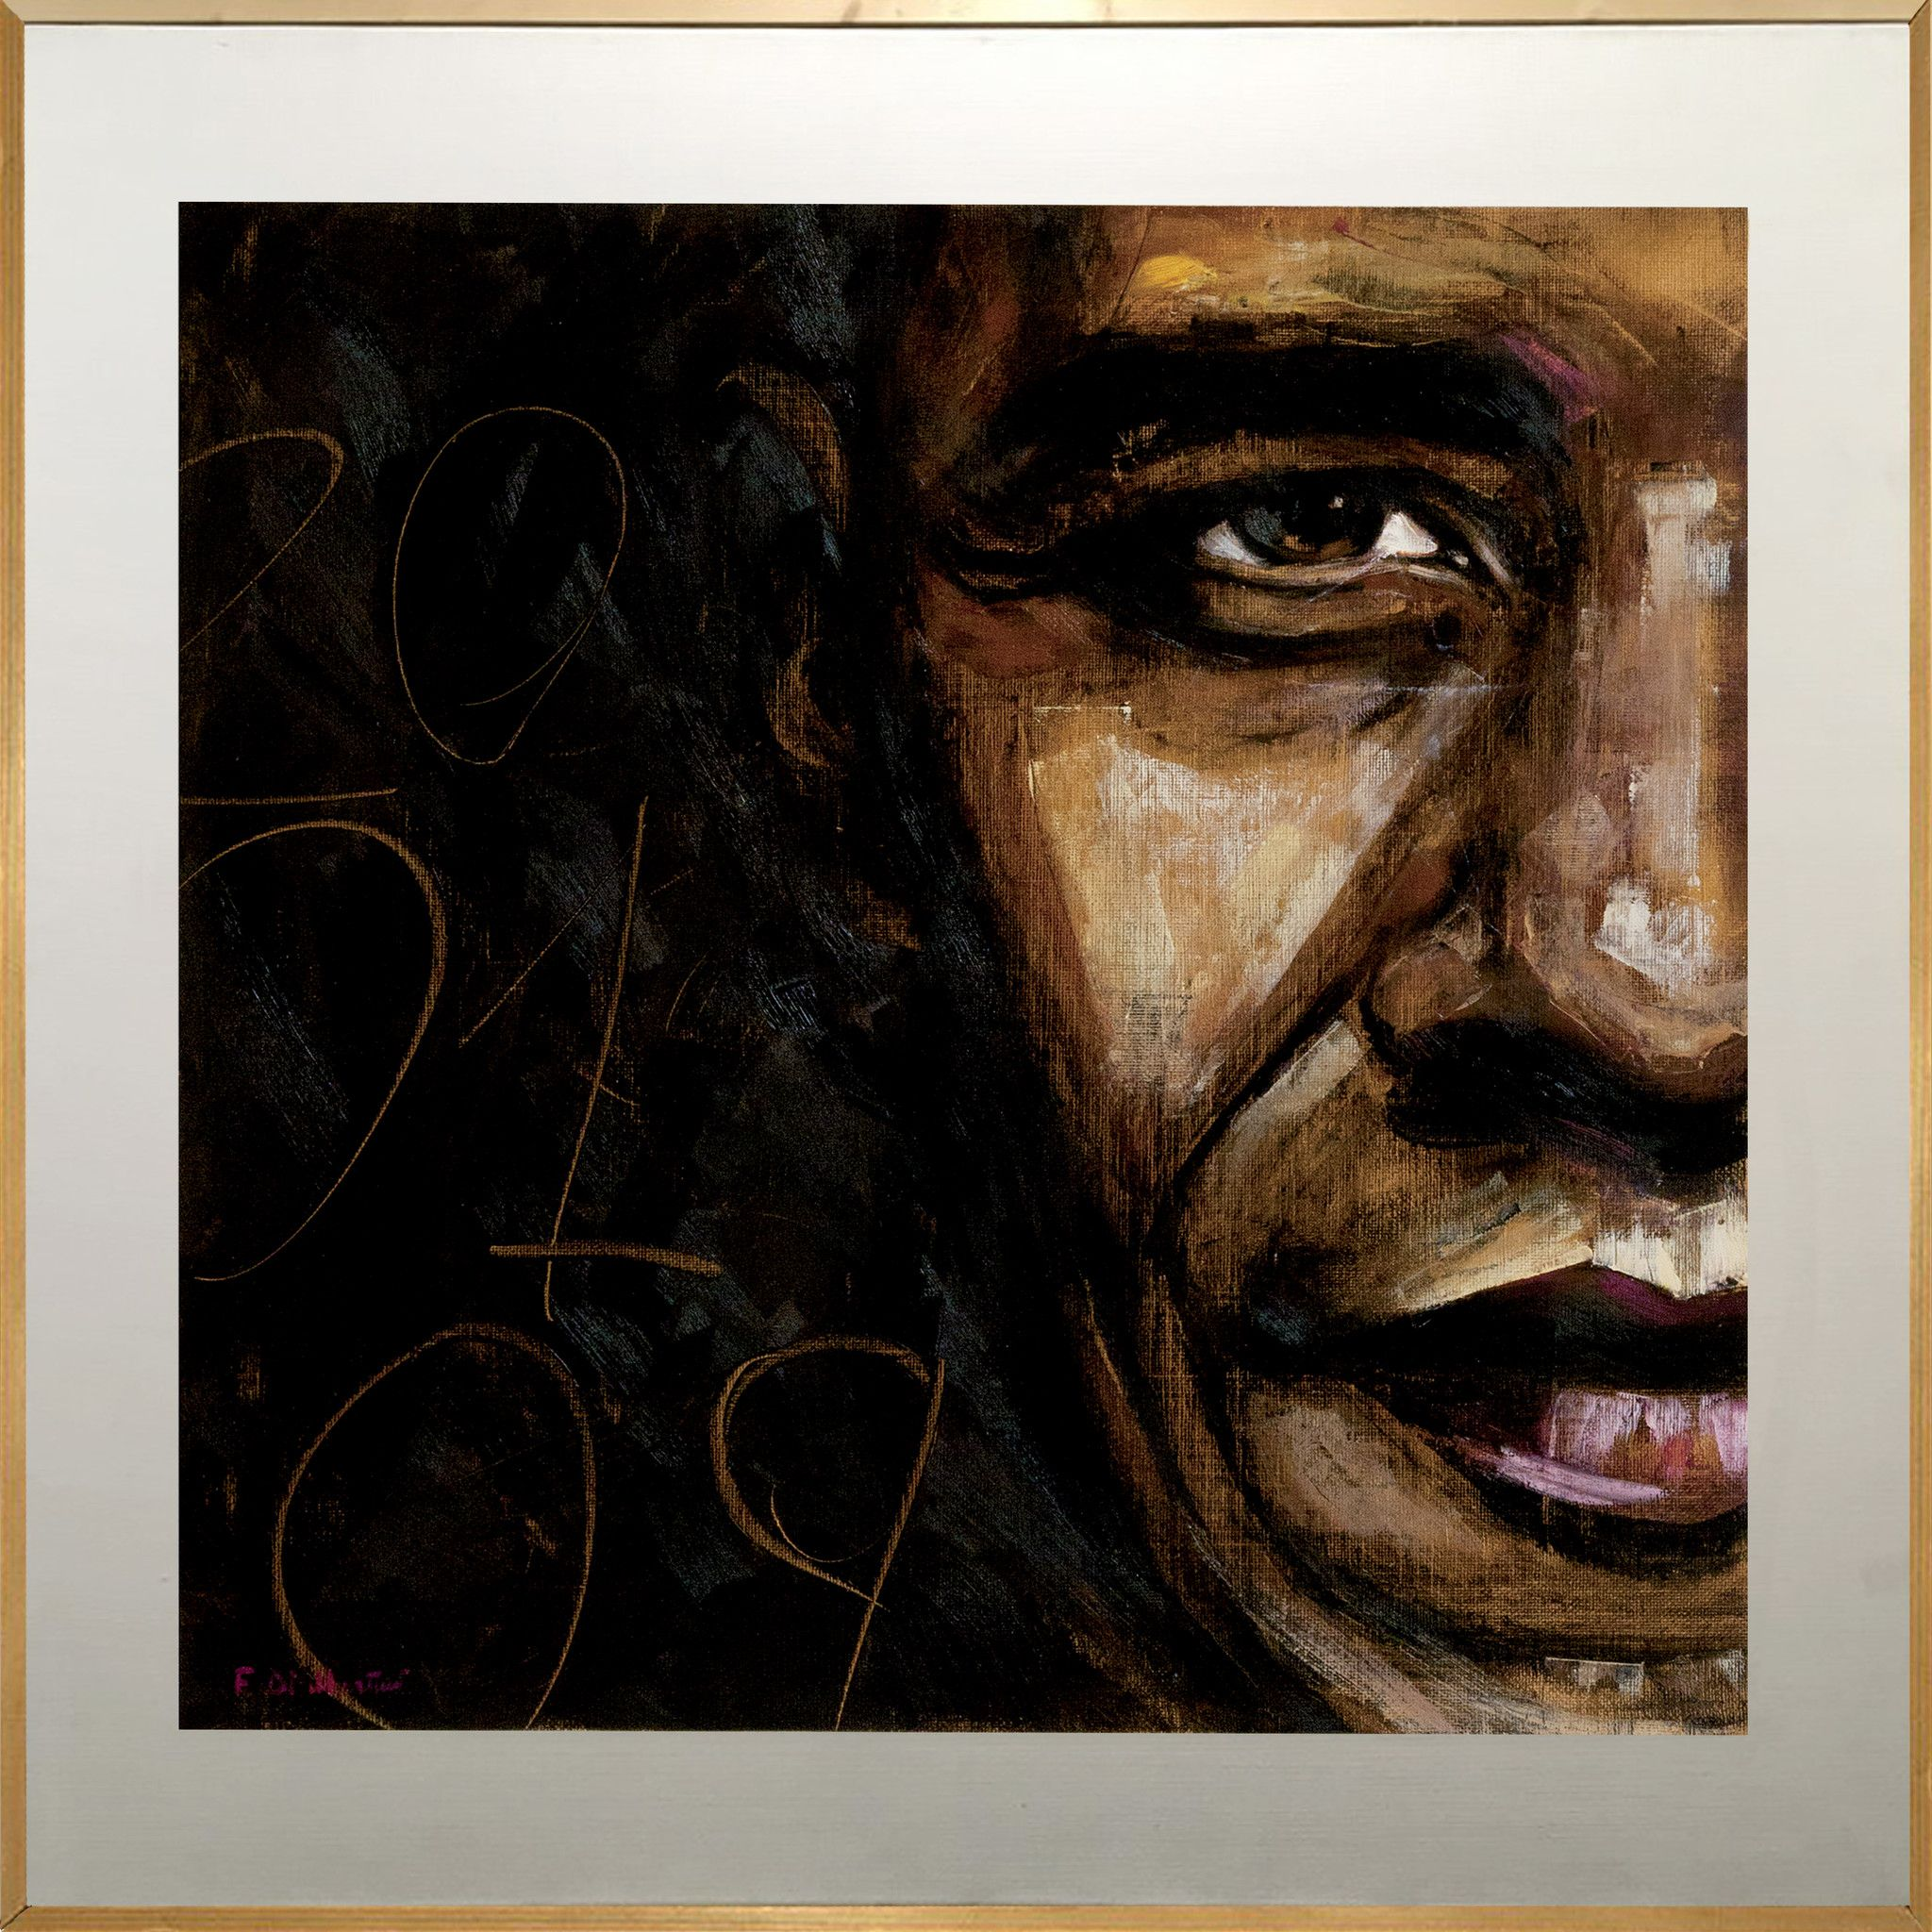 "MIXED MEDIA FRANCESCA DI MARTINO "" OBAMA ""  dimensioni L 100 x H 100 cm."